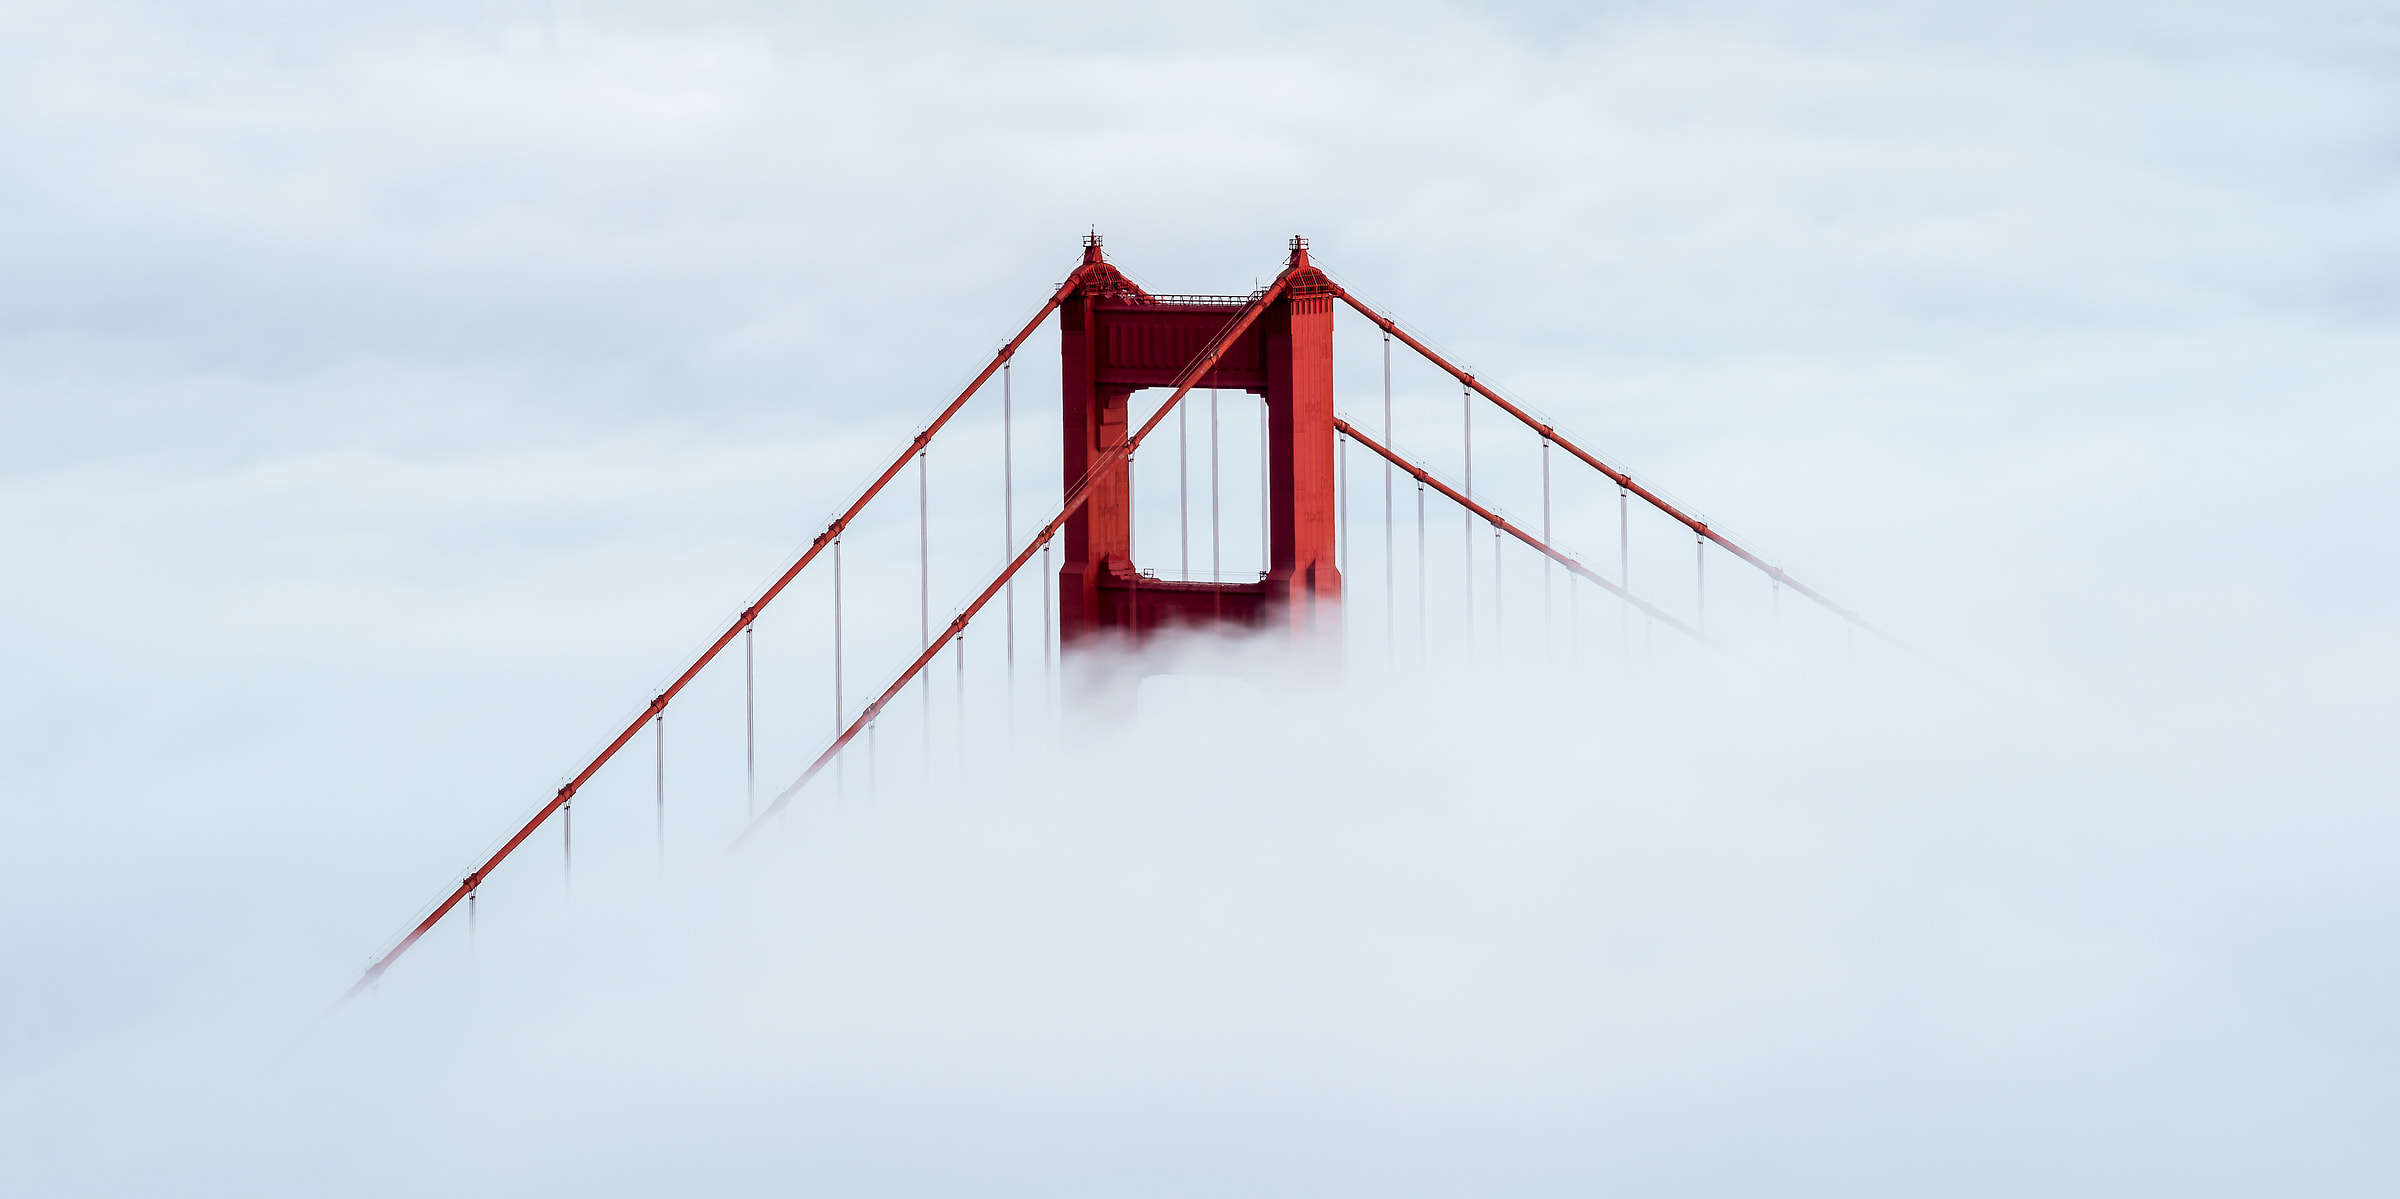 89 megapixels! A high resolution, large-format VAST photo of the Golden Gate Bridge in fog; fine art bridge photo print created by Justin Katz in the Marin Headlands near San Francisco, California